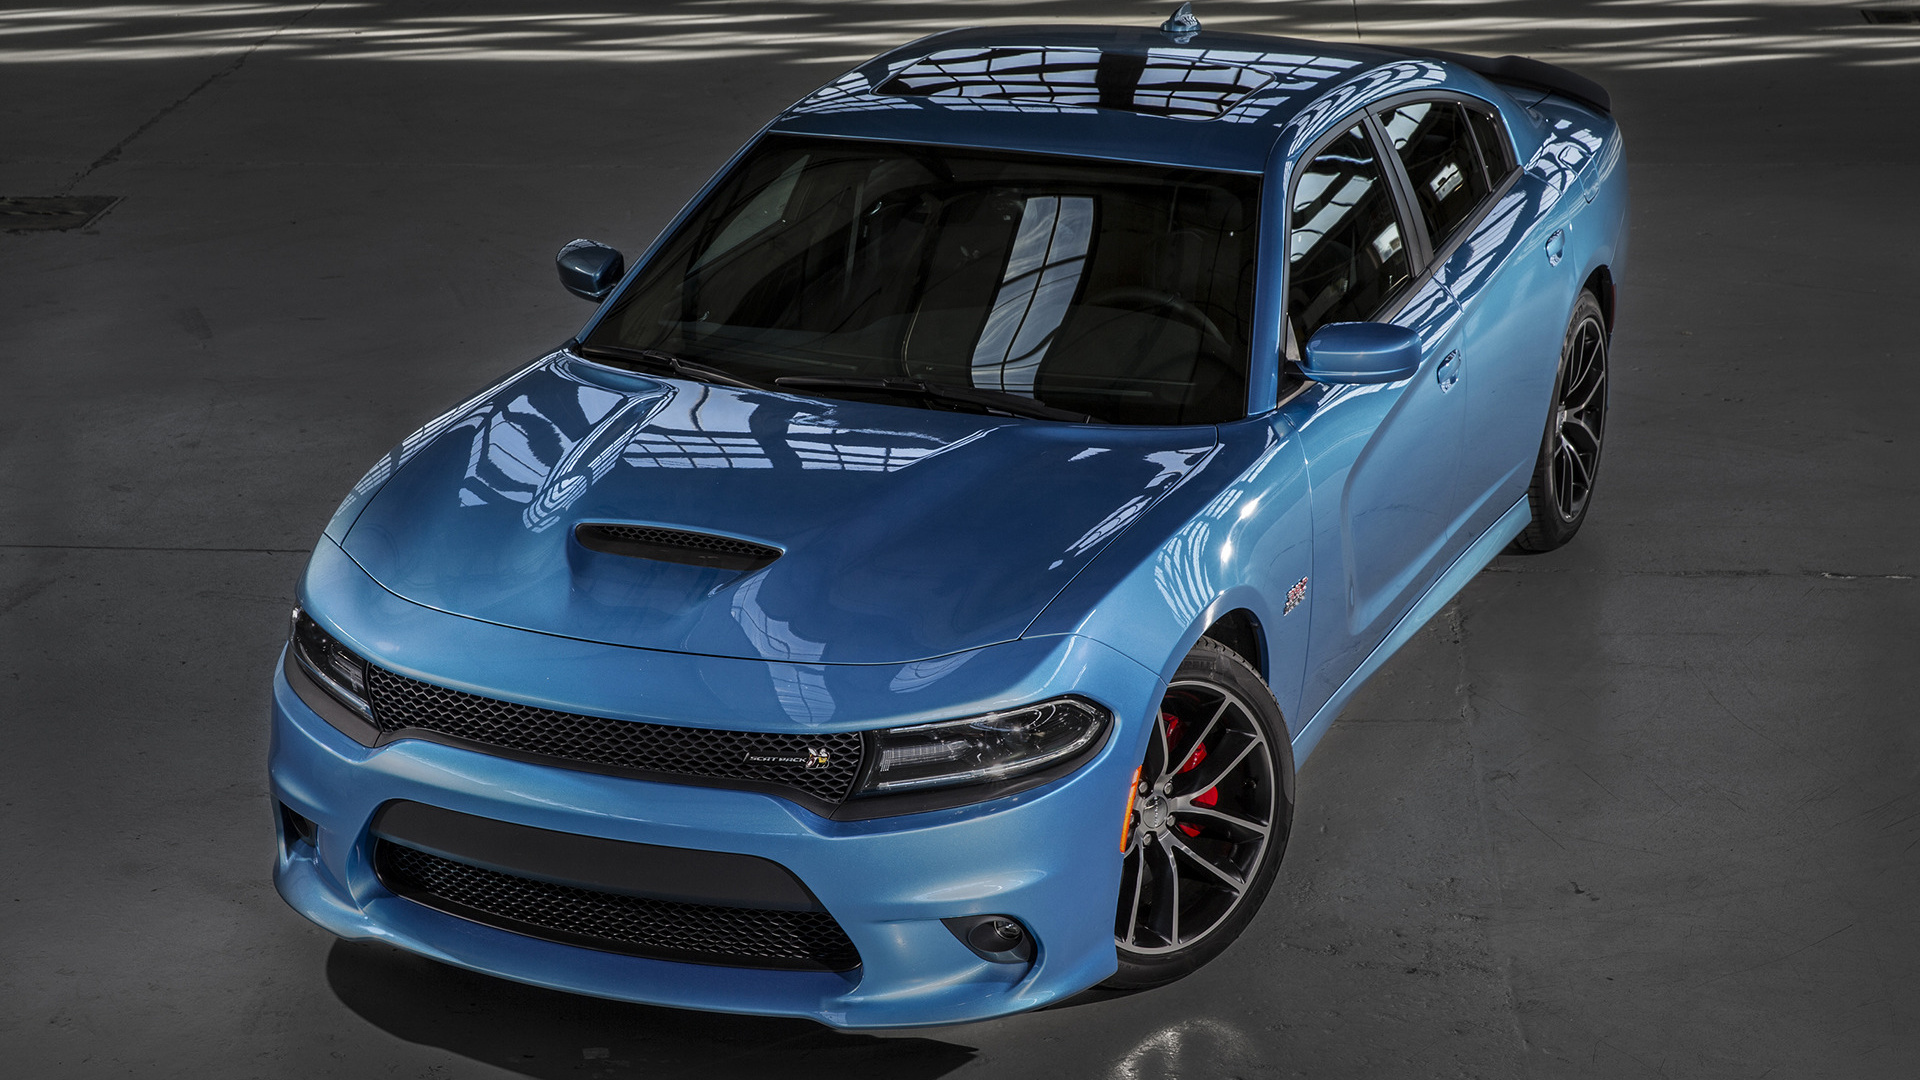 2015 Dodge Charger RT Scat Pack Wallpapers And HD